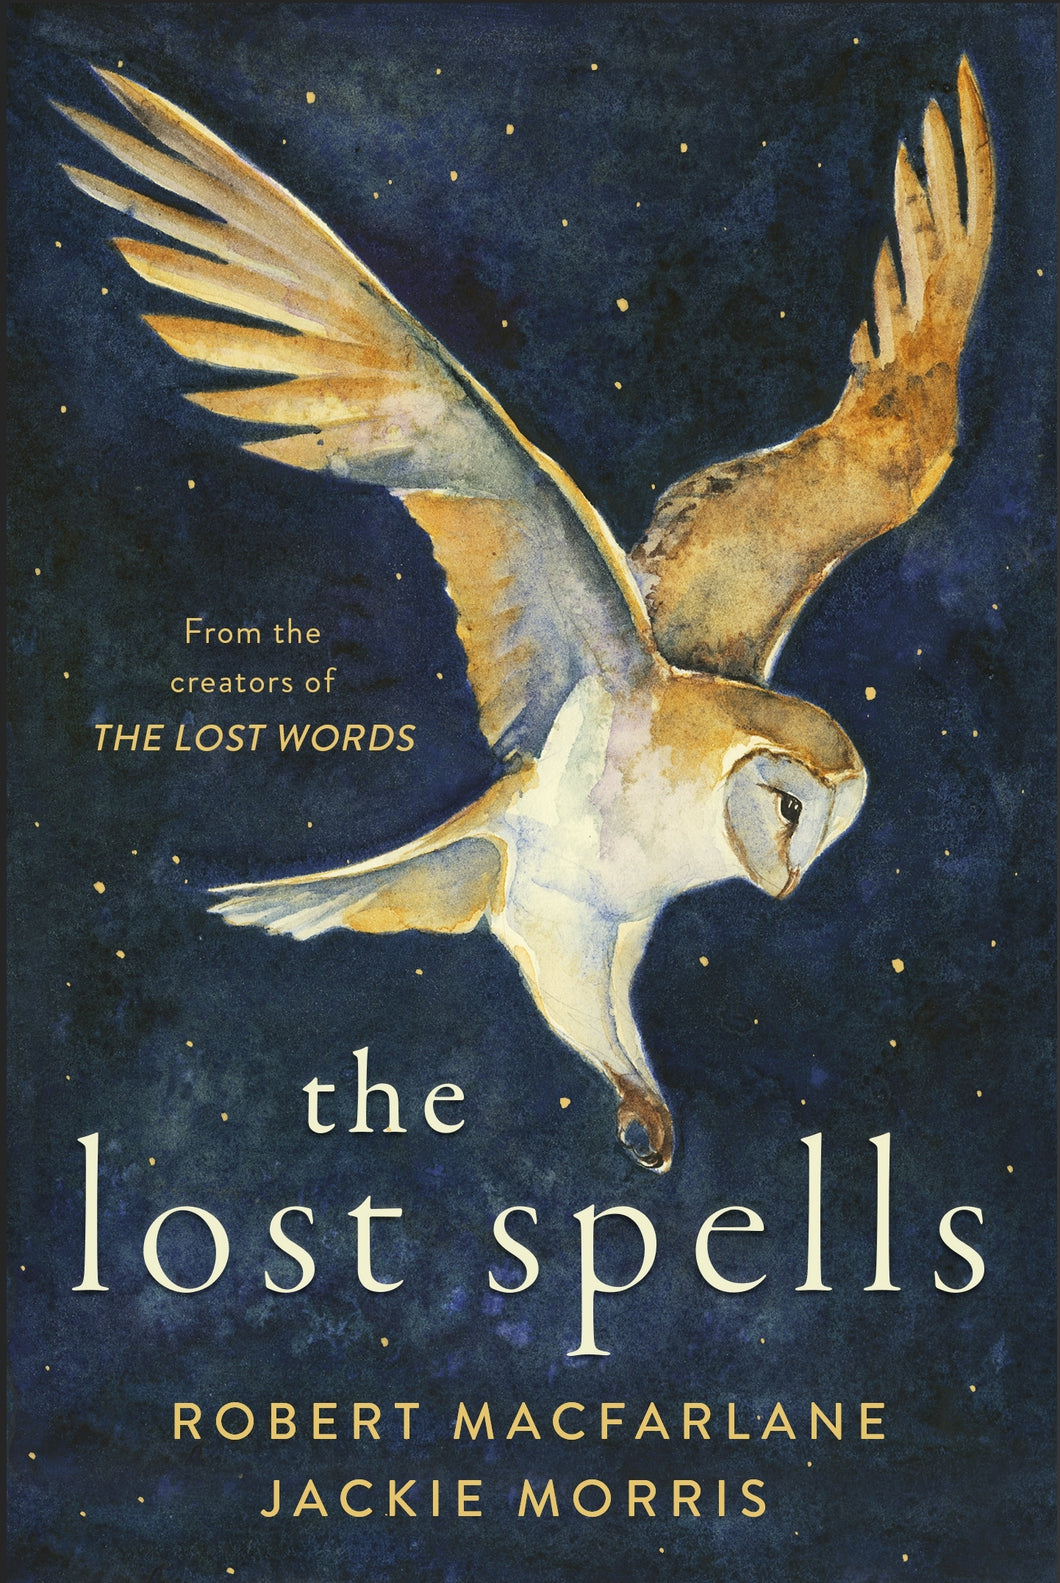 The Lost Spells - Robert Macfarlane and Jackie Morris